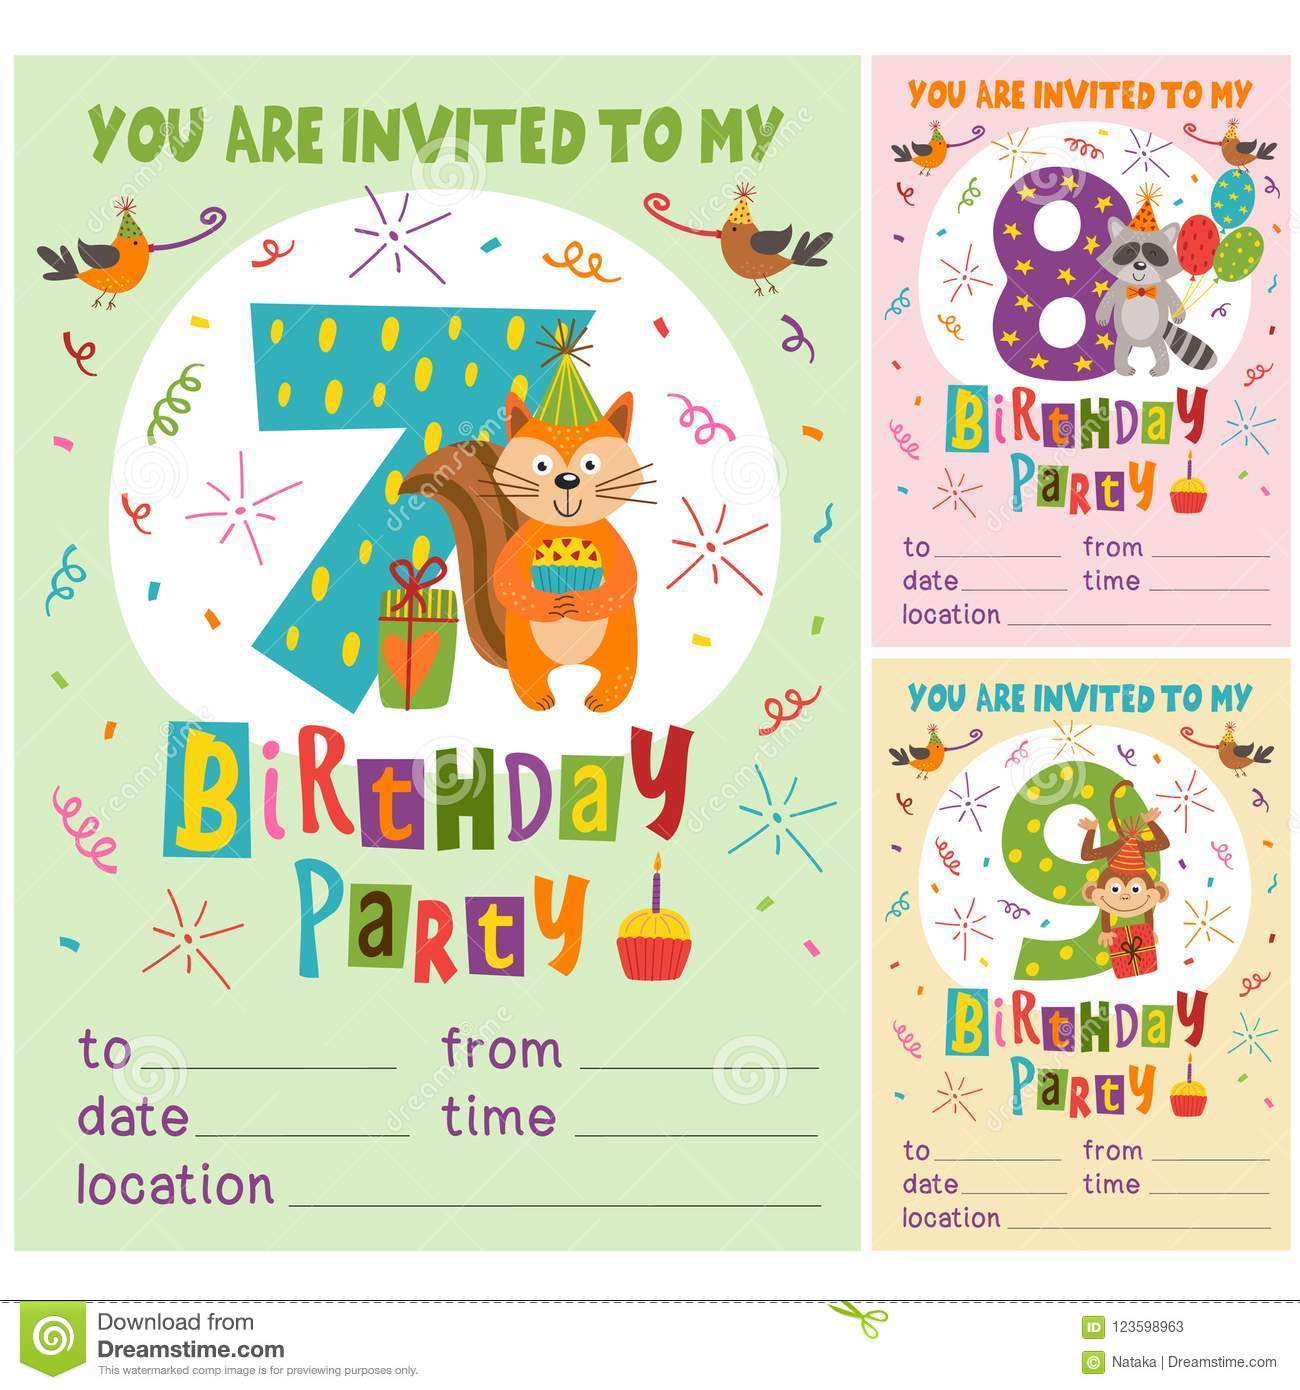 Happy Birthday Invitation Card Template With Funny Animals From 7 To